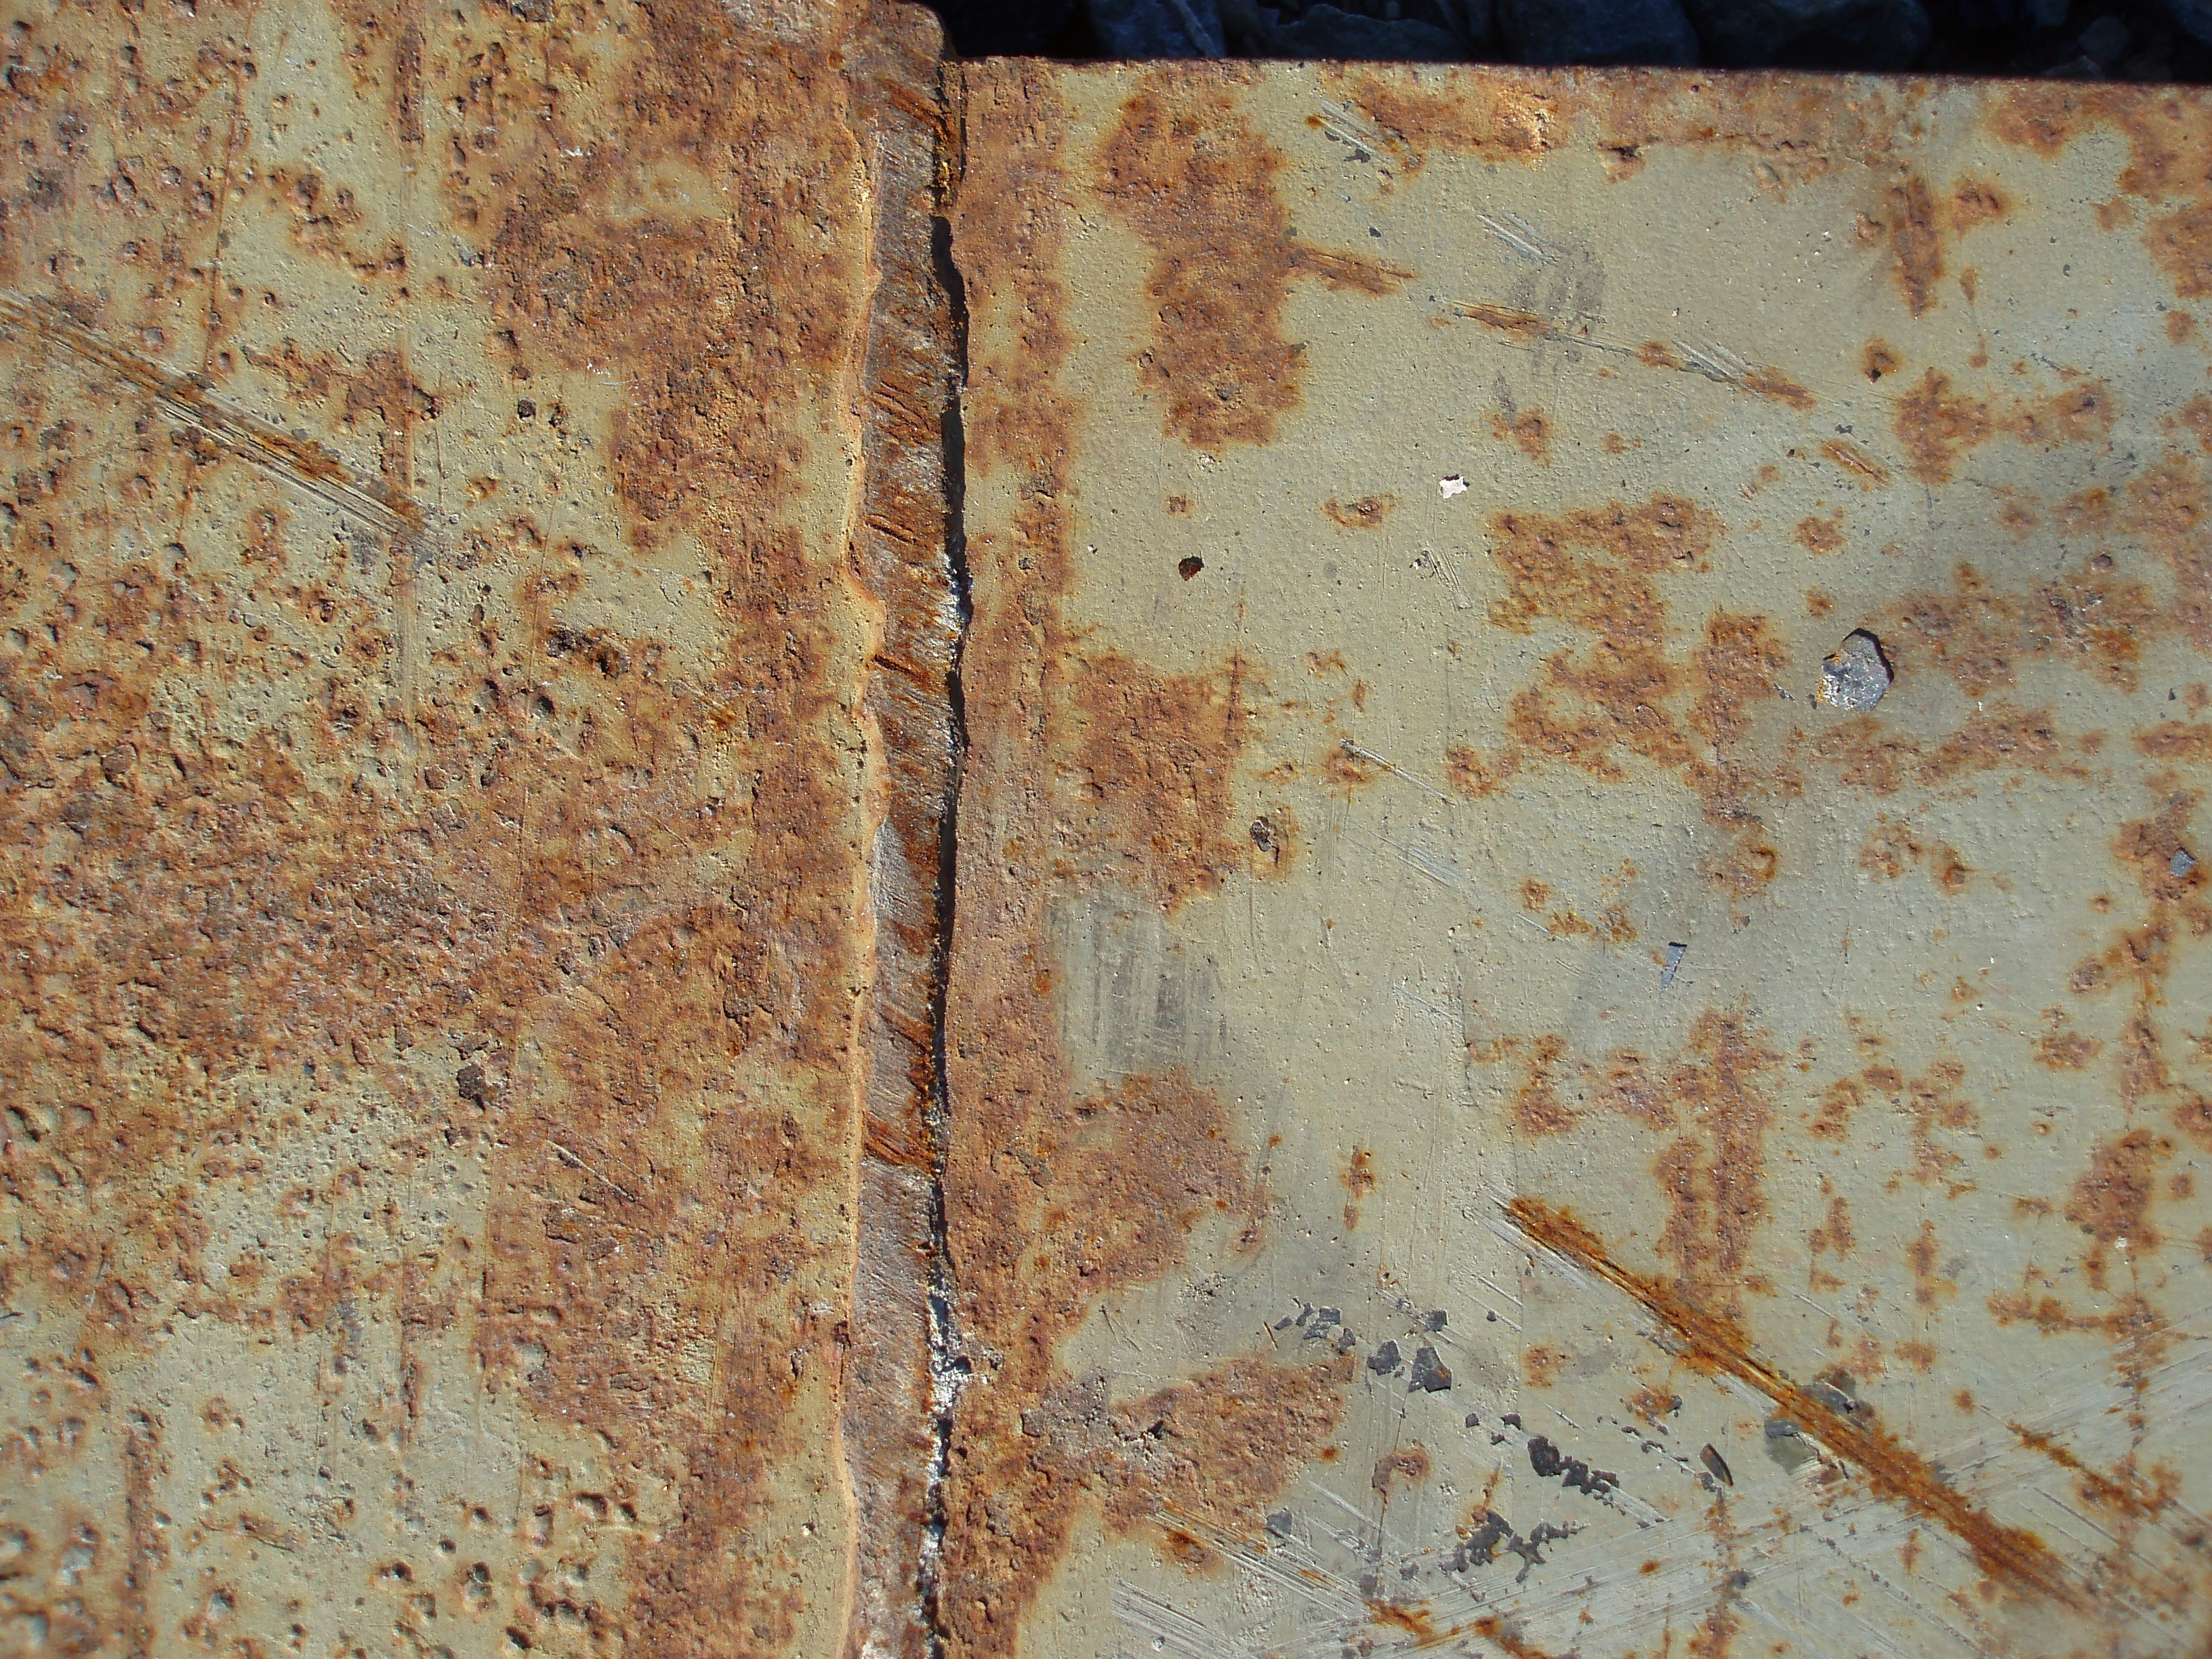 Fall Plate Wallpaper Free Photo Rusted Metal Surface Streams Surface